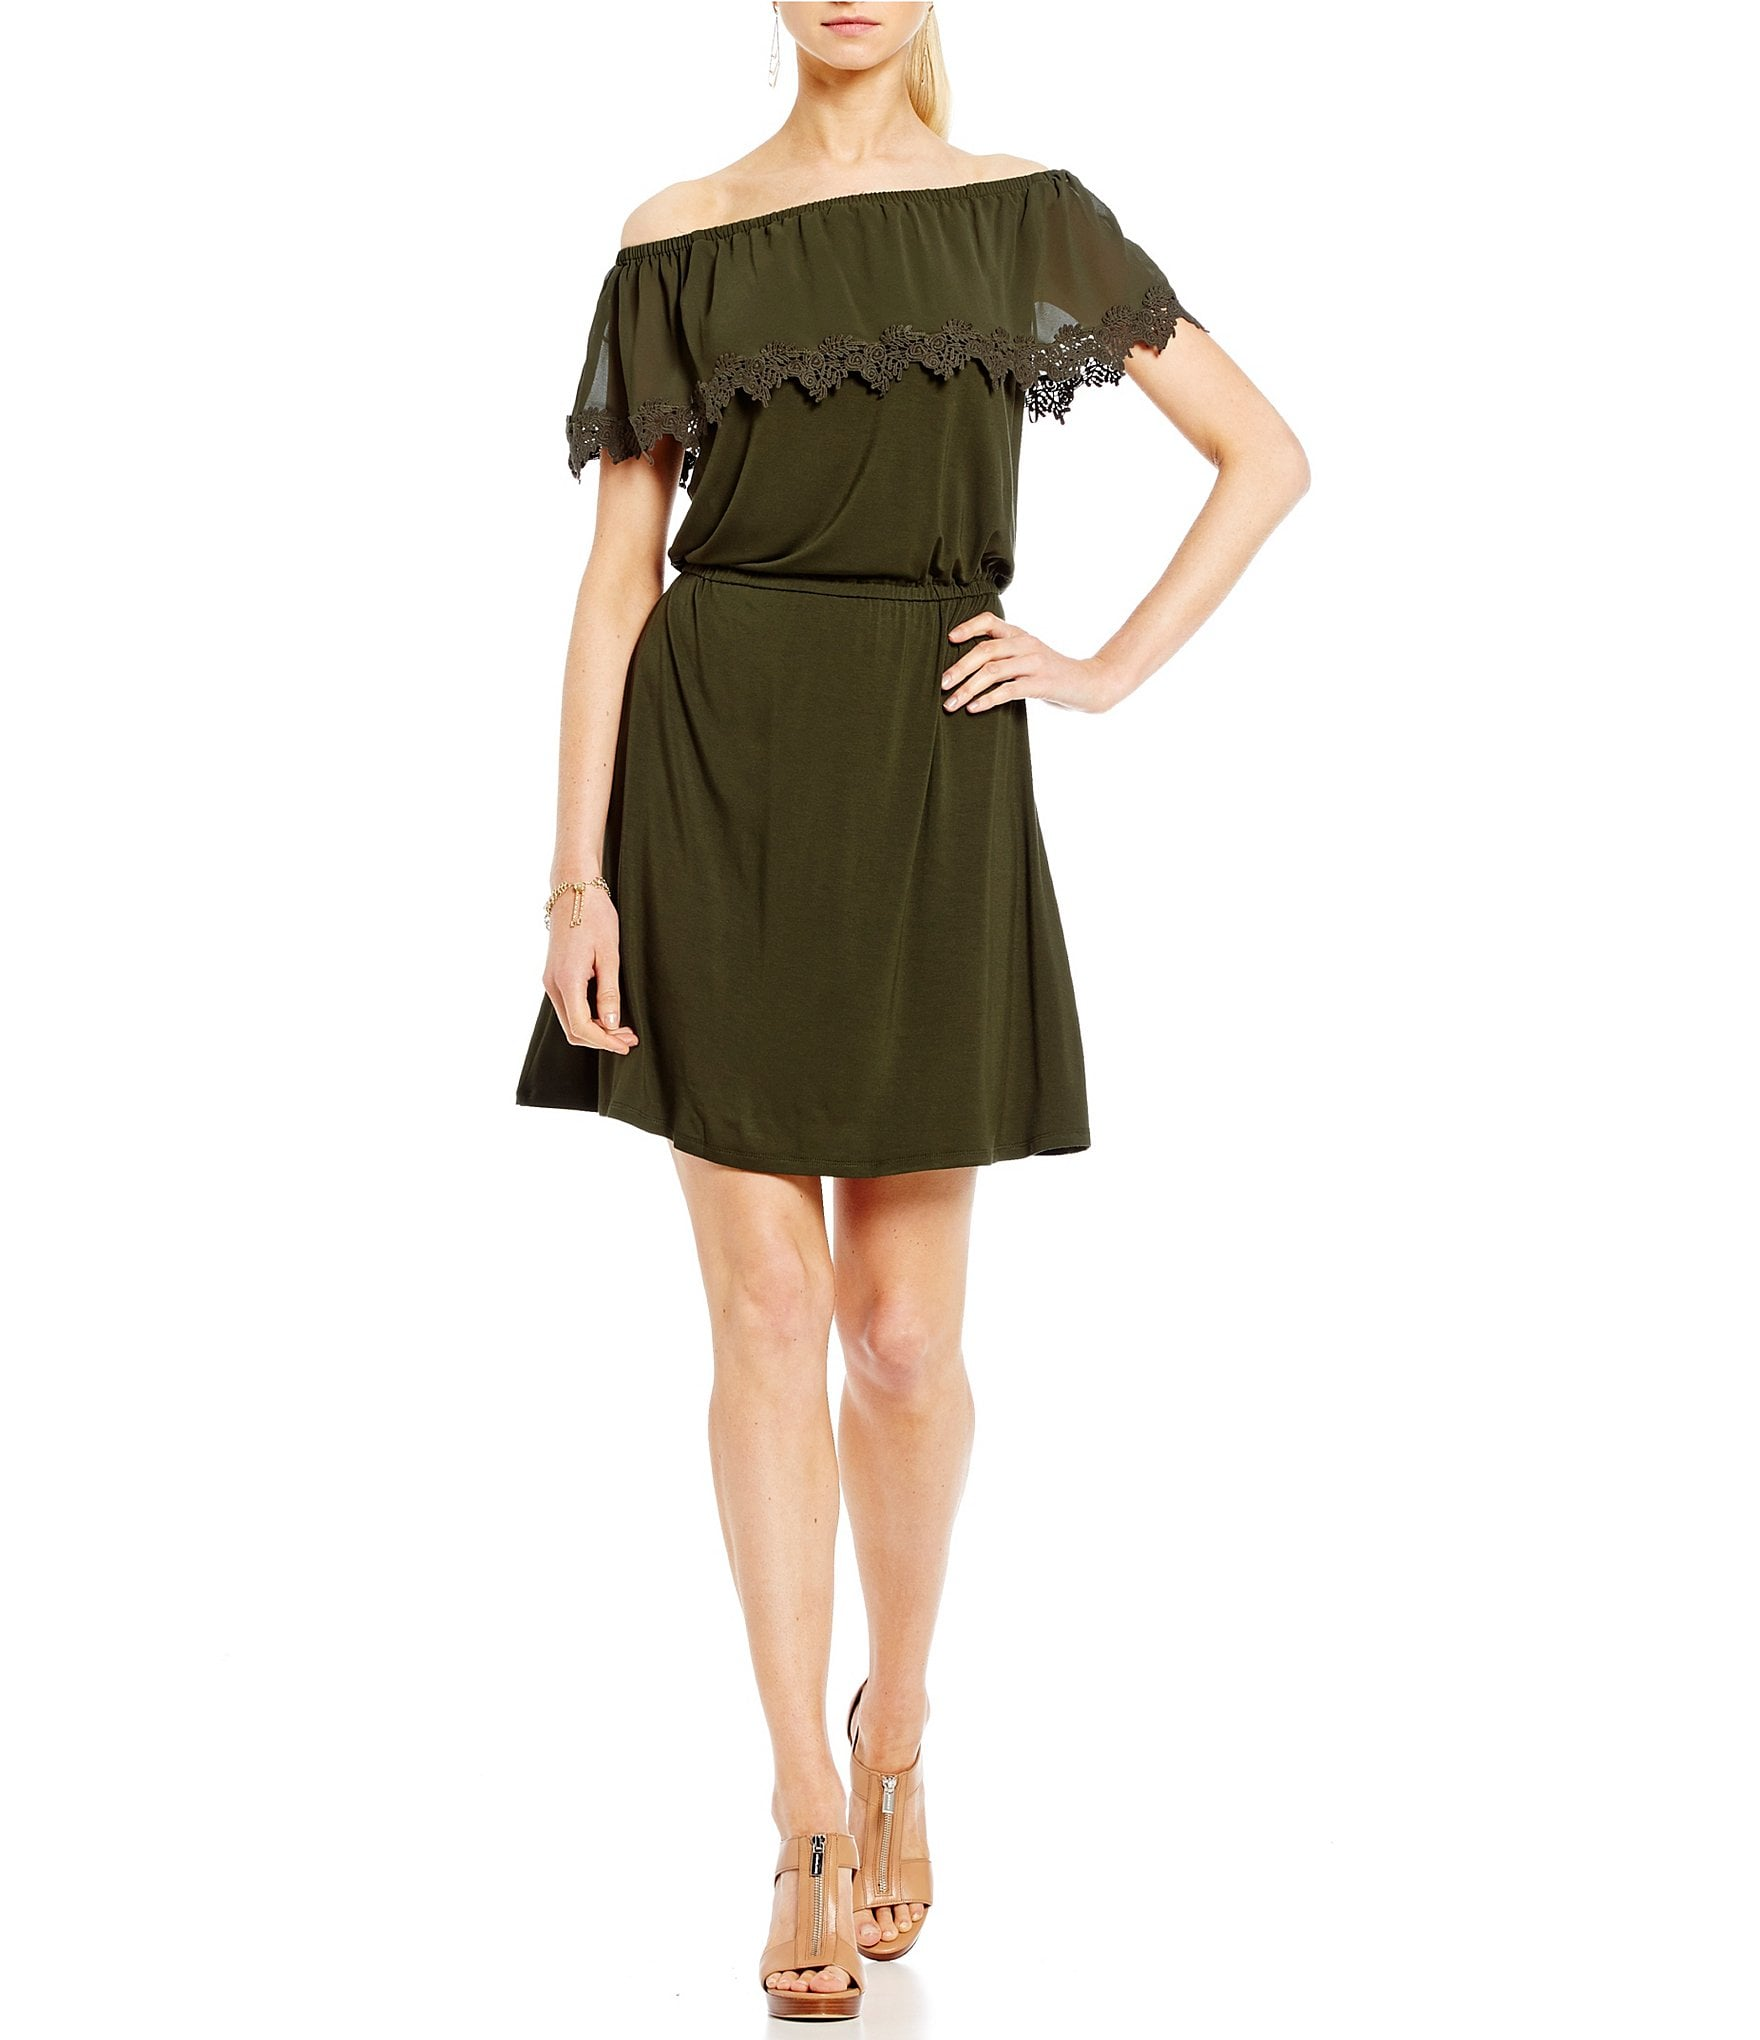 ff3bc39db8373 Buy michael kors off shoulder dress   OFF61% Discounted